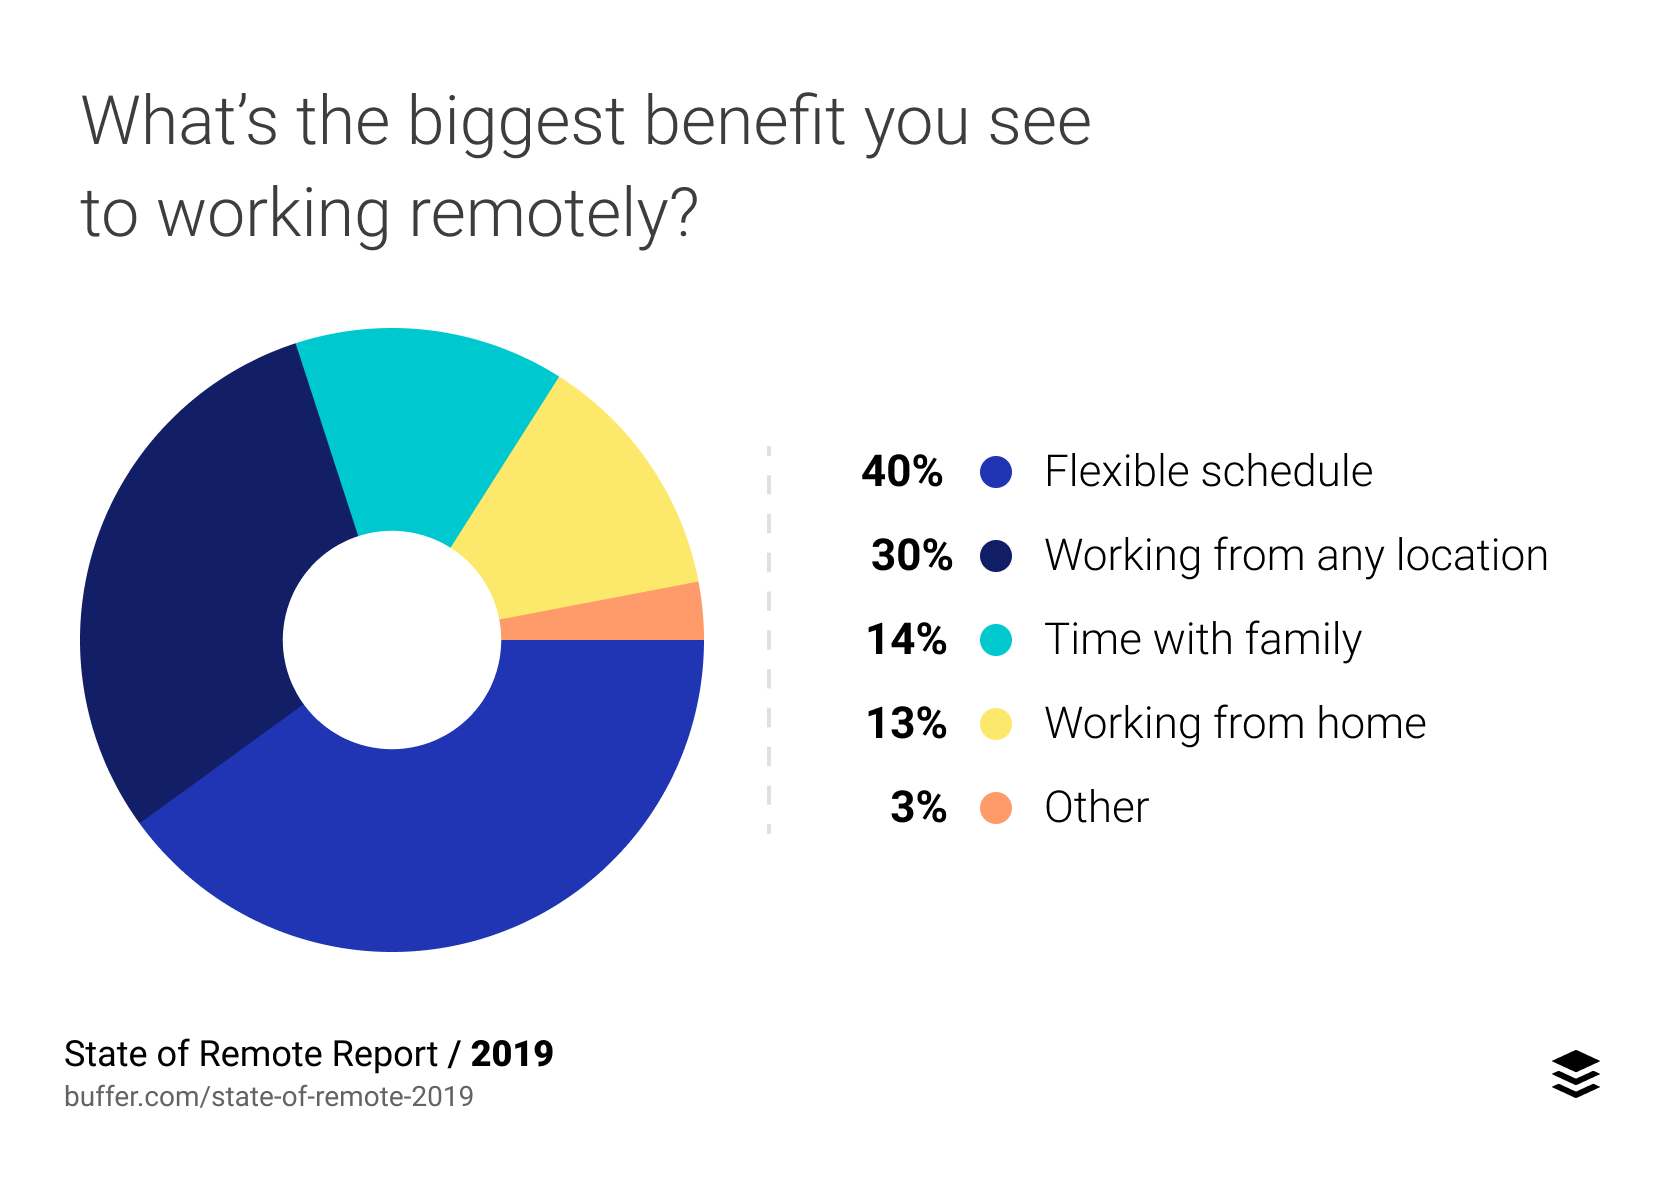 Benefits to Remote Work